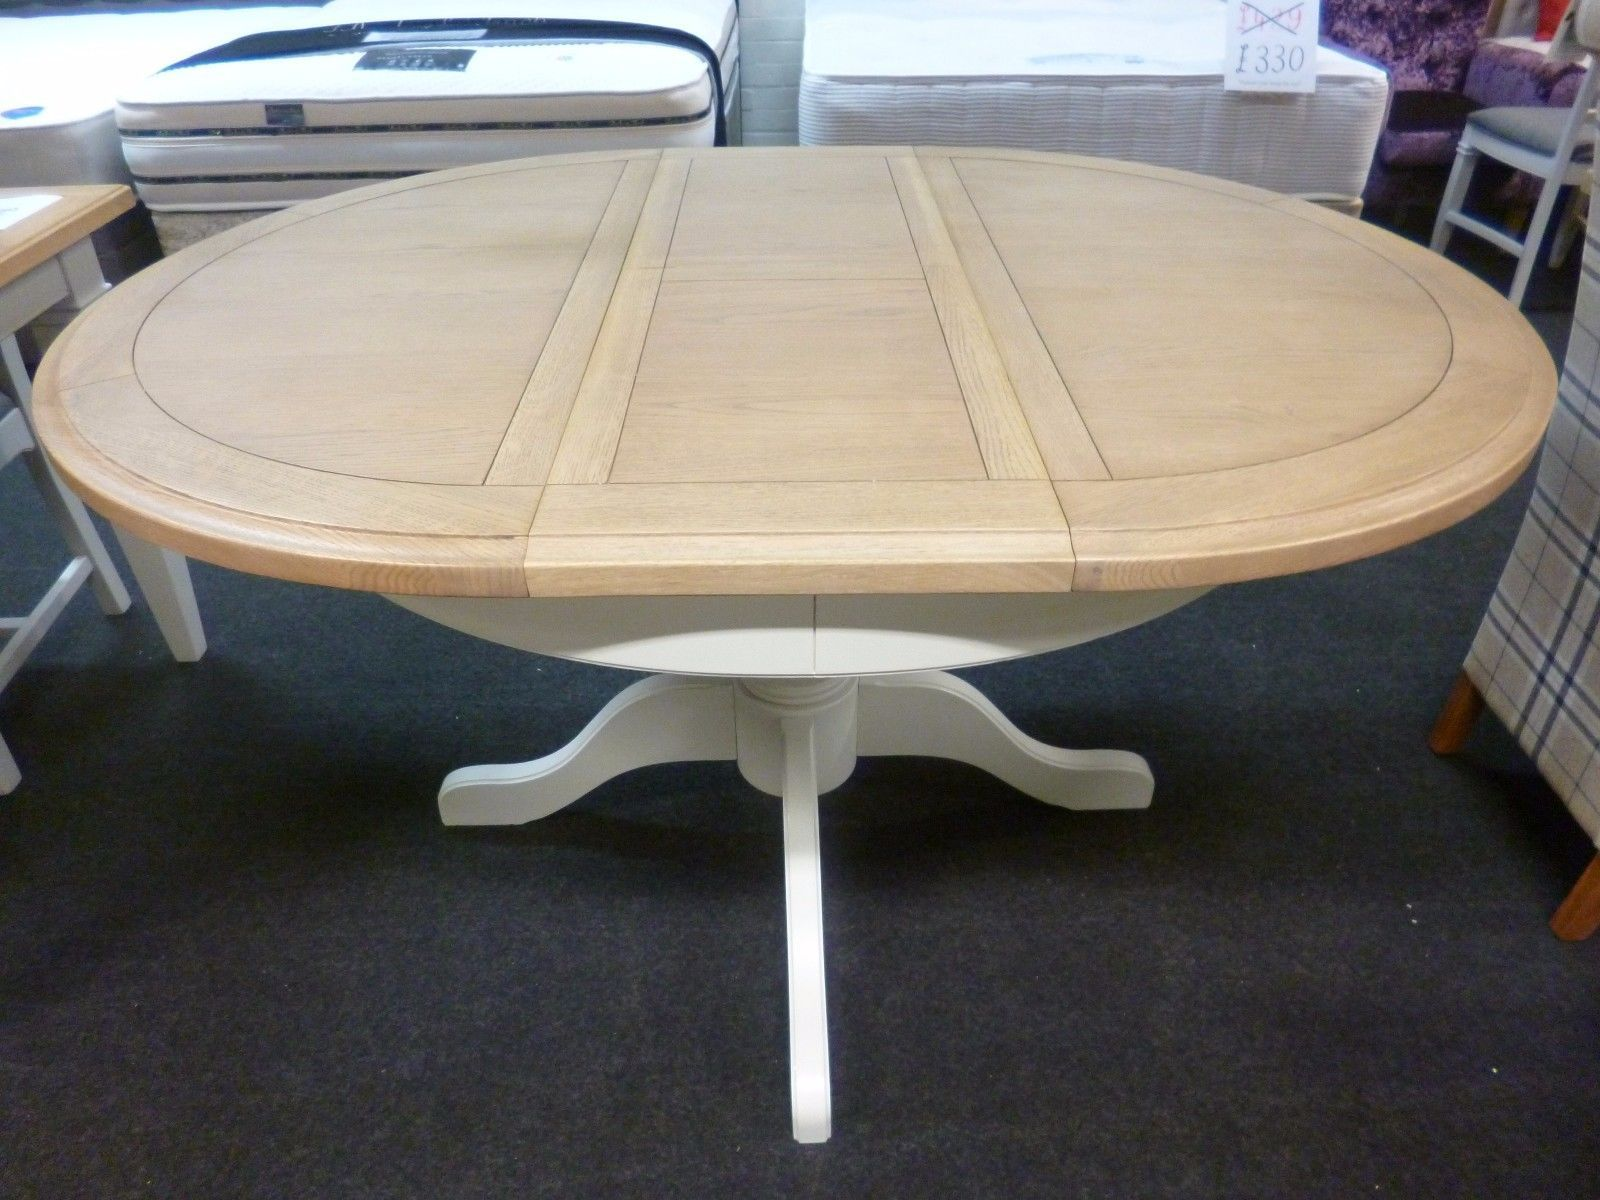 New Light Grey & Oak Round Extending Pedestal Dining Table